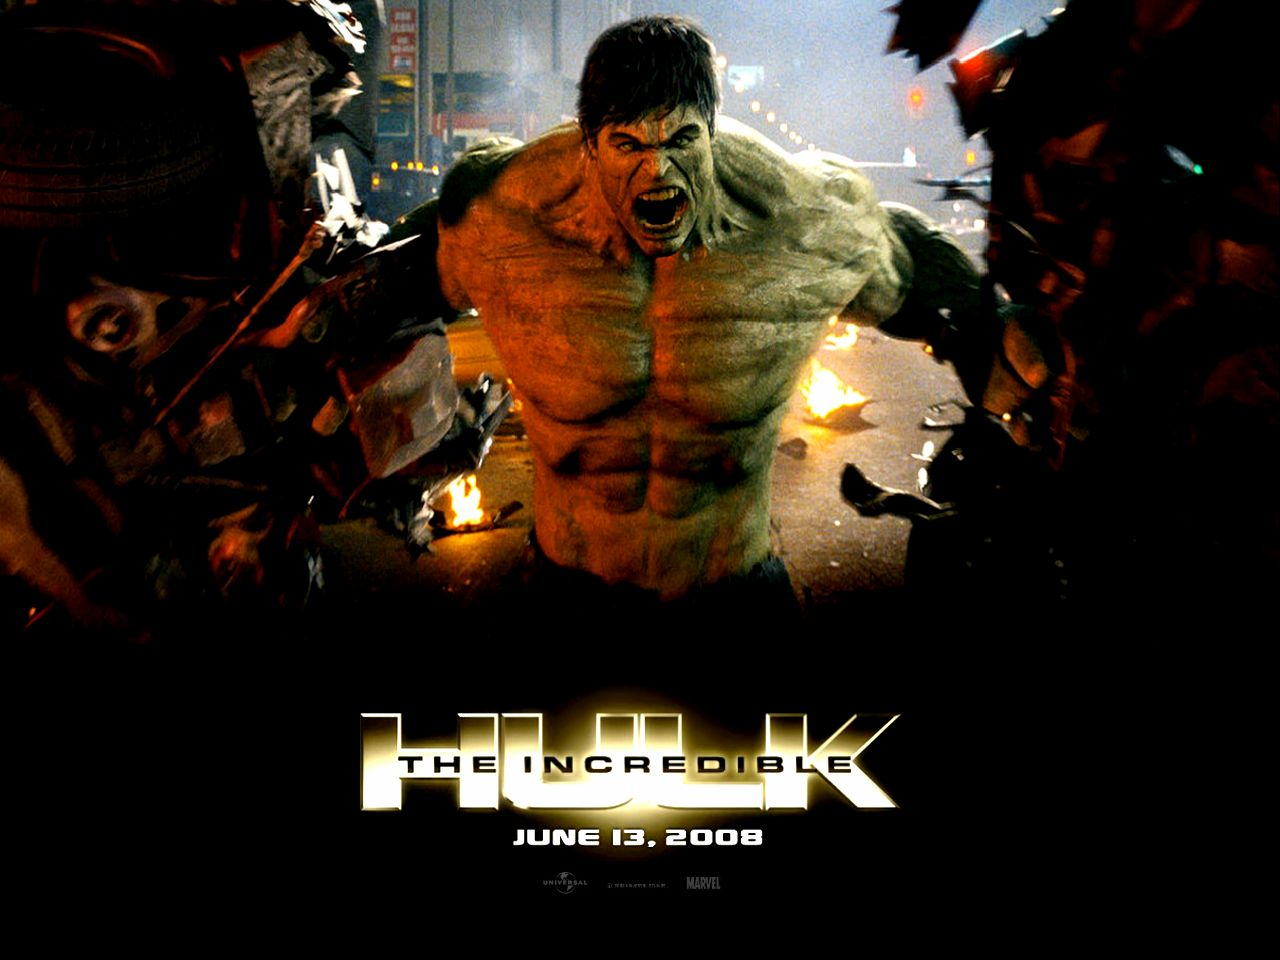 http://2.bp.blogspot.com/-b7uRD4ymj1Y/Tili6BS9DgI/AAAAAAAAADY/rS2W0bImFvY/s1600/The-Incredible-Hulk-1-1152x864.jpg